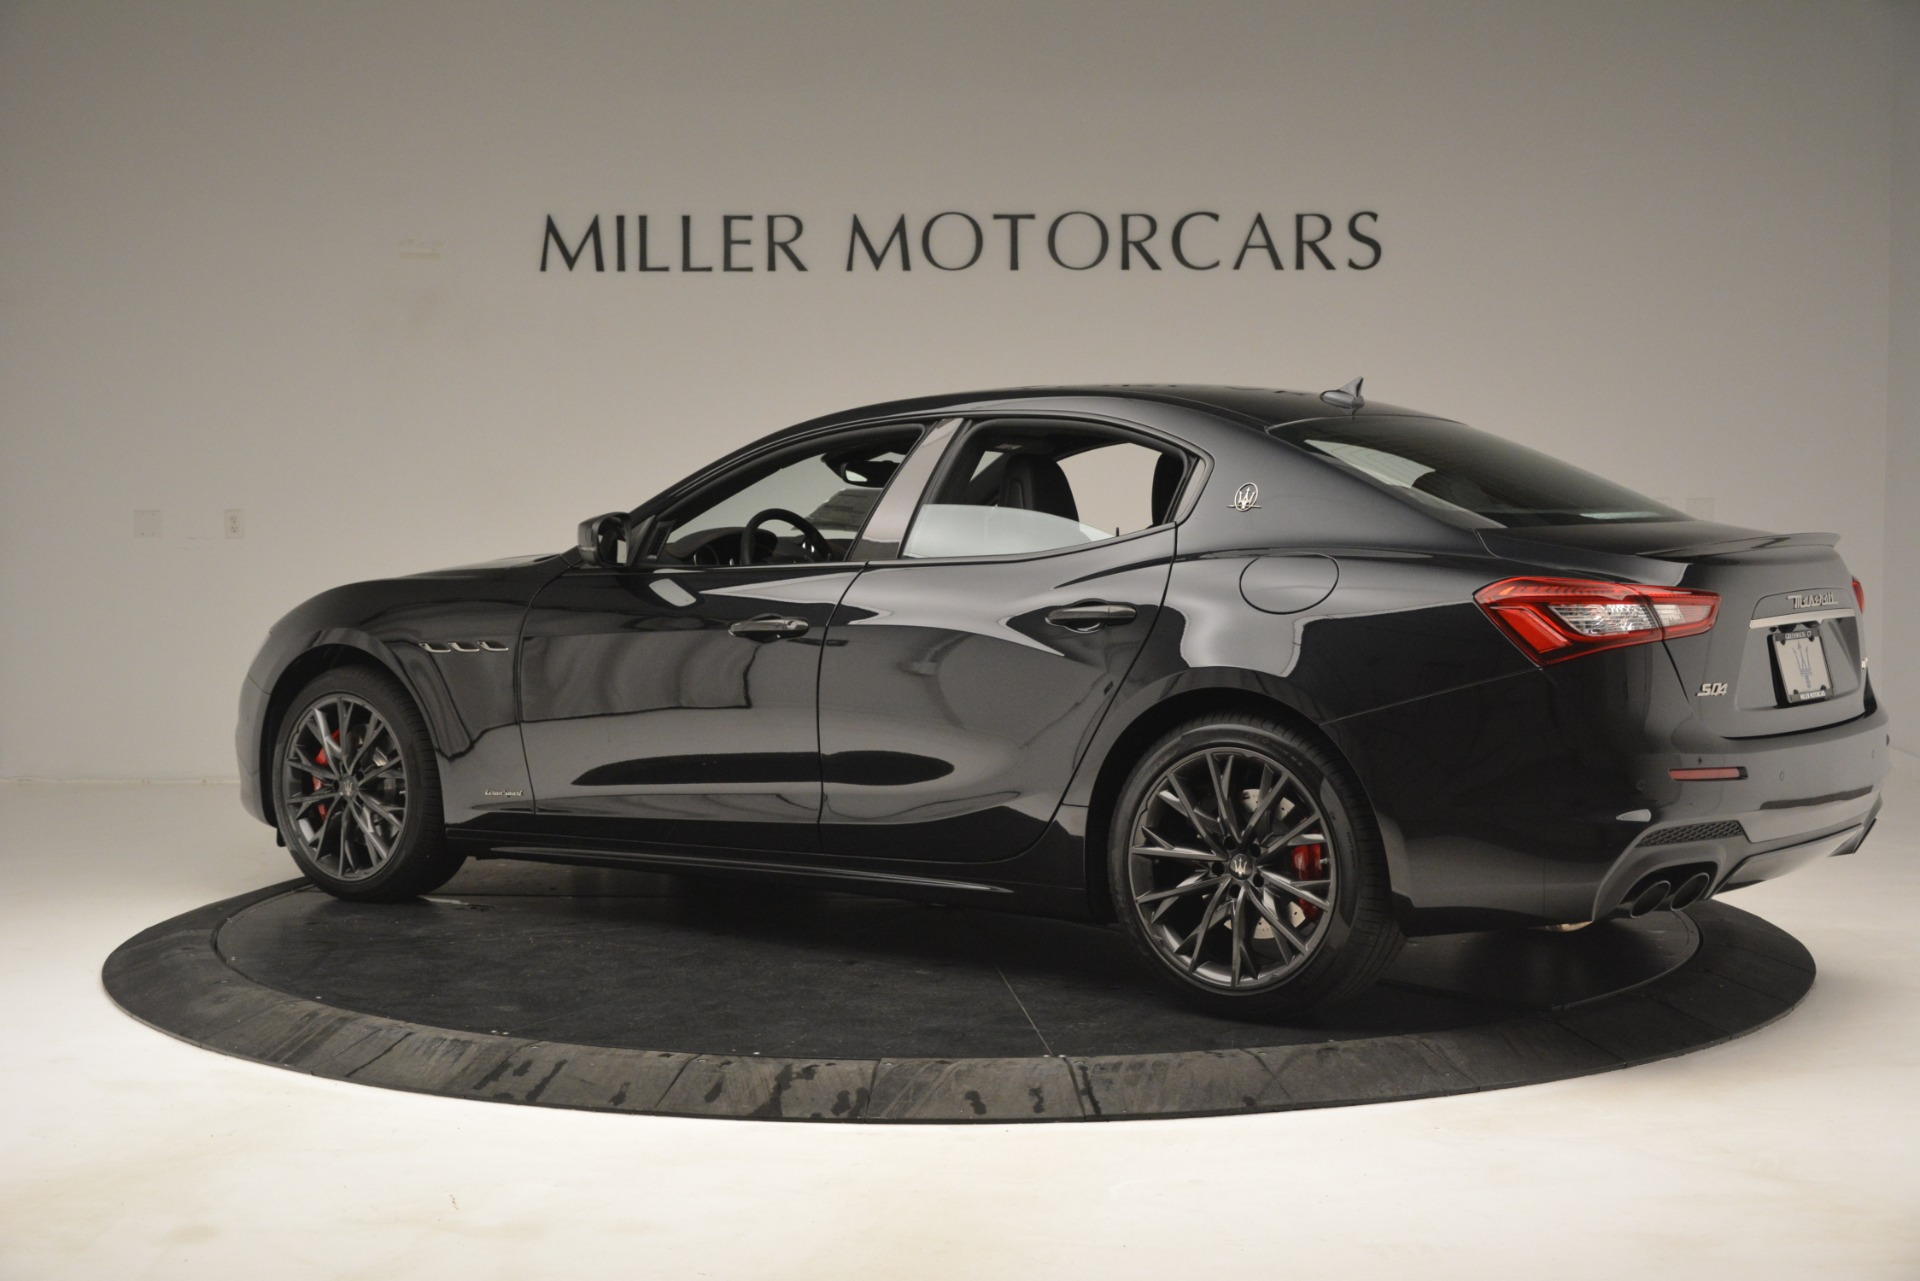 New 2019 Maserati Ghibli S Q4 GranSport For Sale In Westport, CT 2924_p4